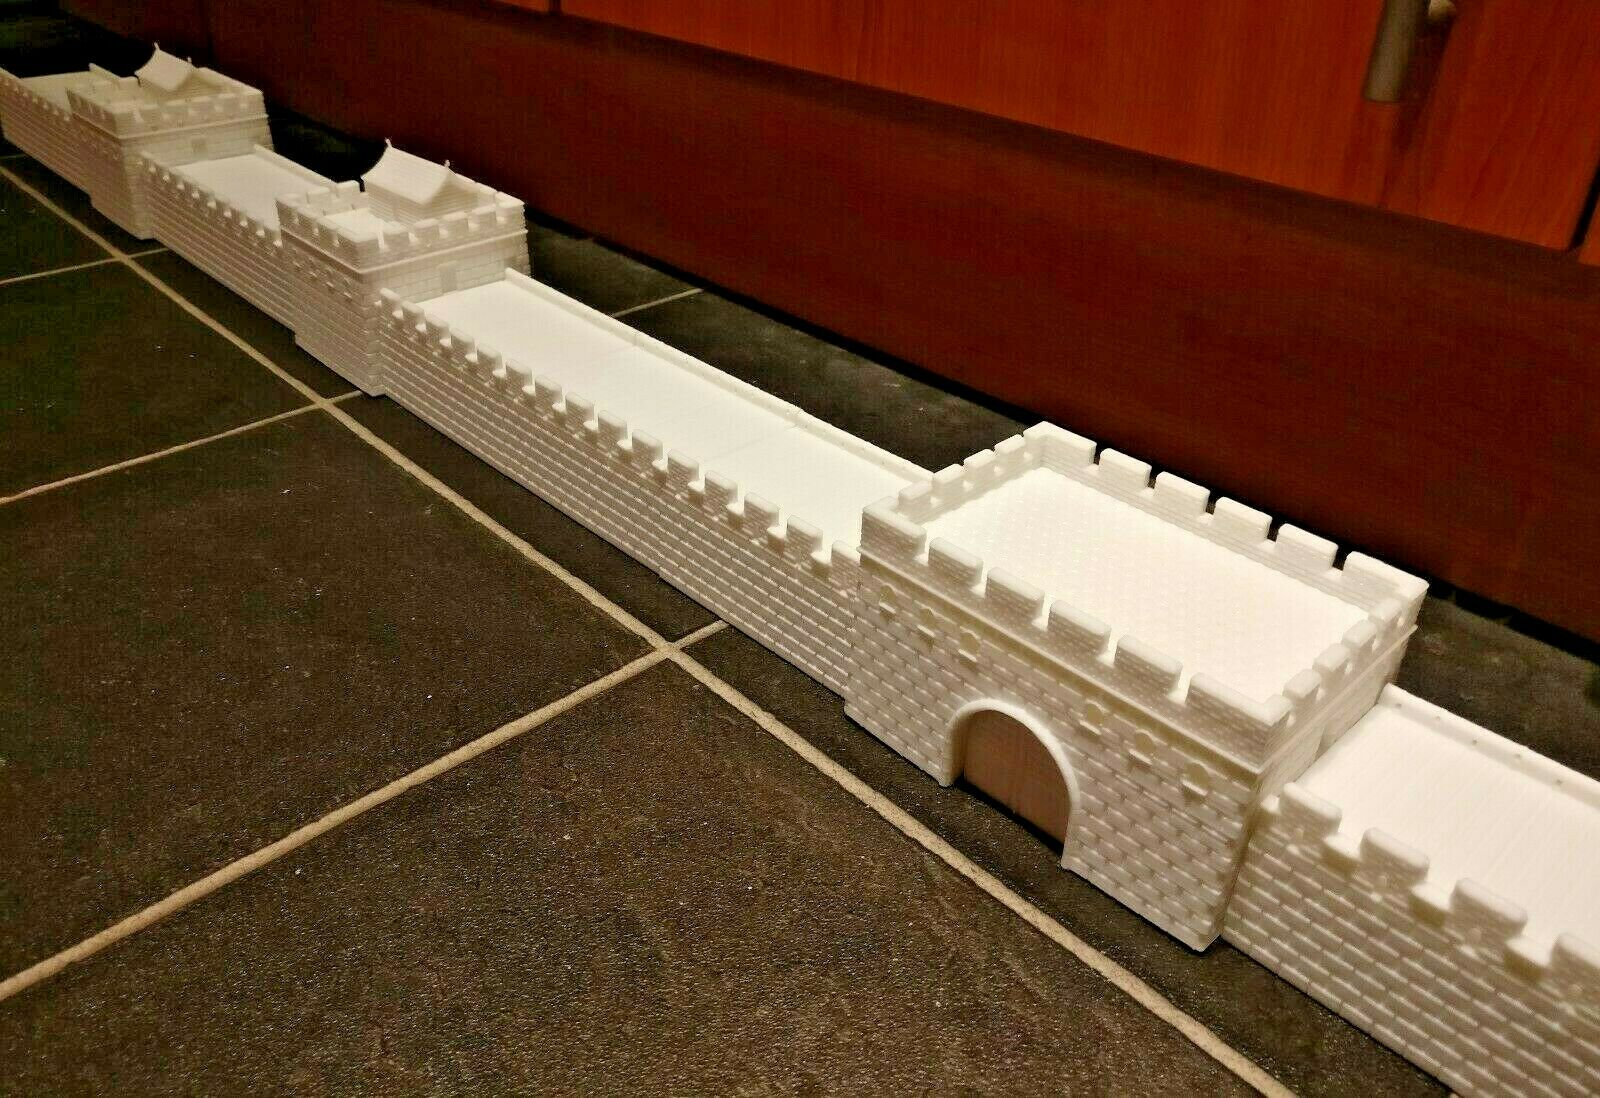 10mm Wargaming 10mm Scale Ancient Great Wall Of China